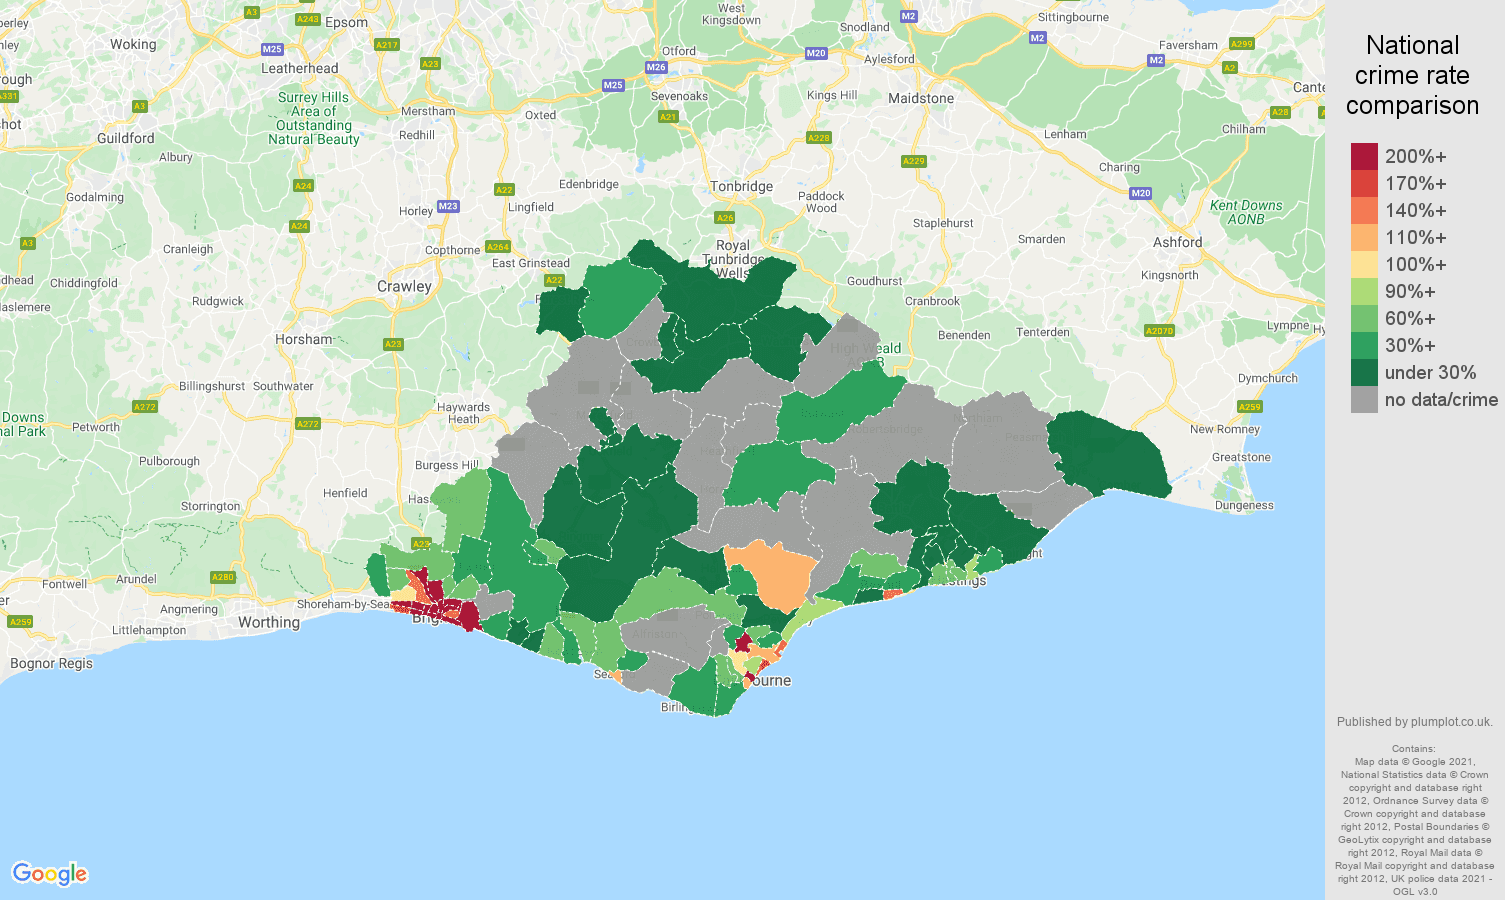 East Sussex bicycle theft crime rate comparison map